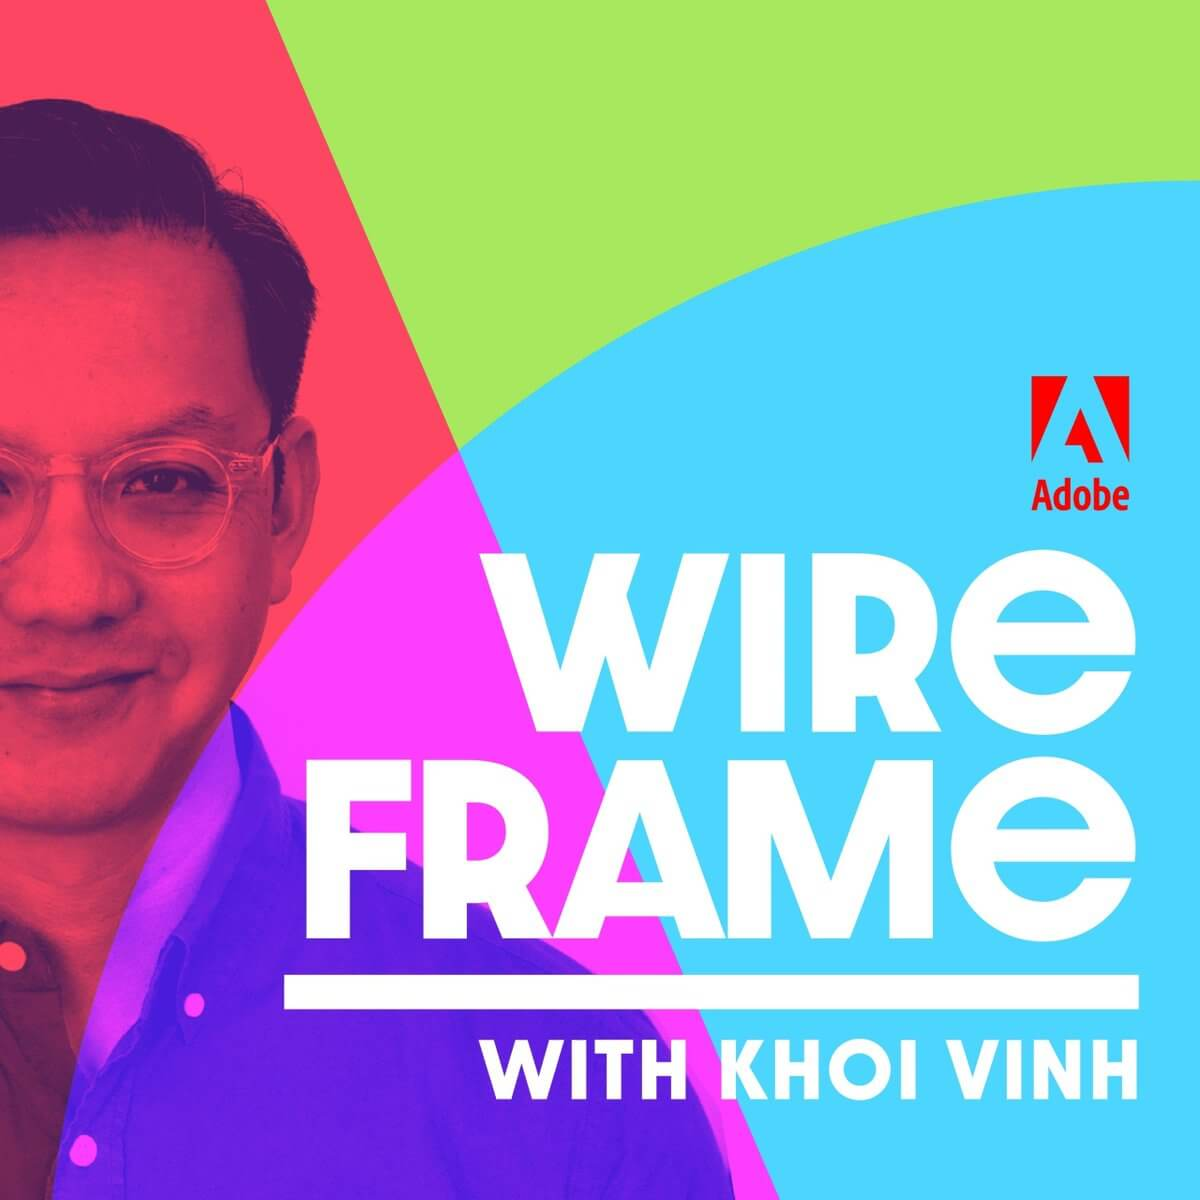 Wireframe with KHOI VINH